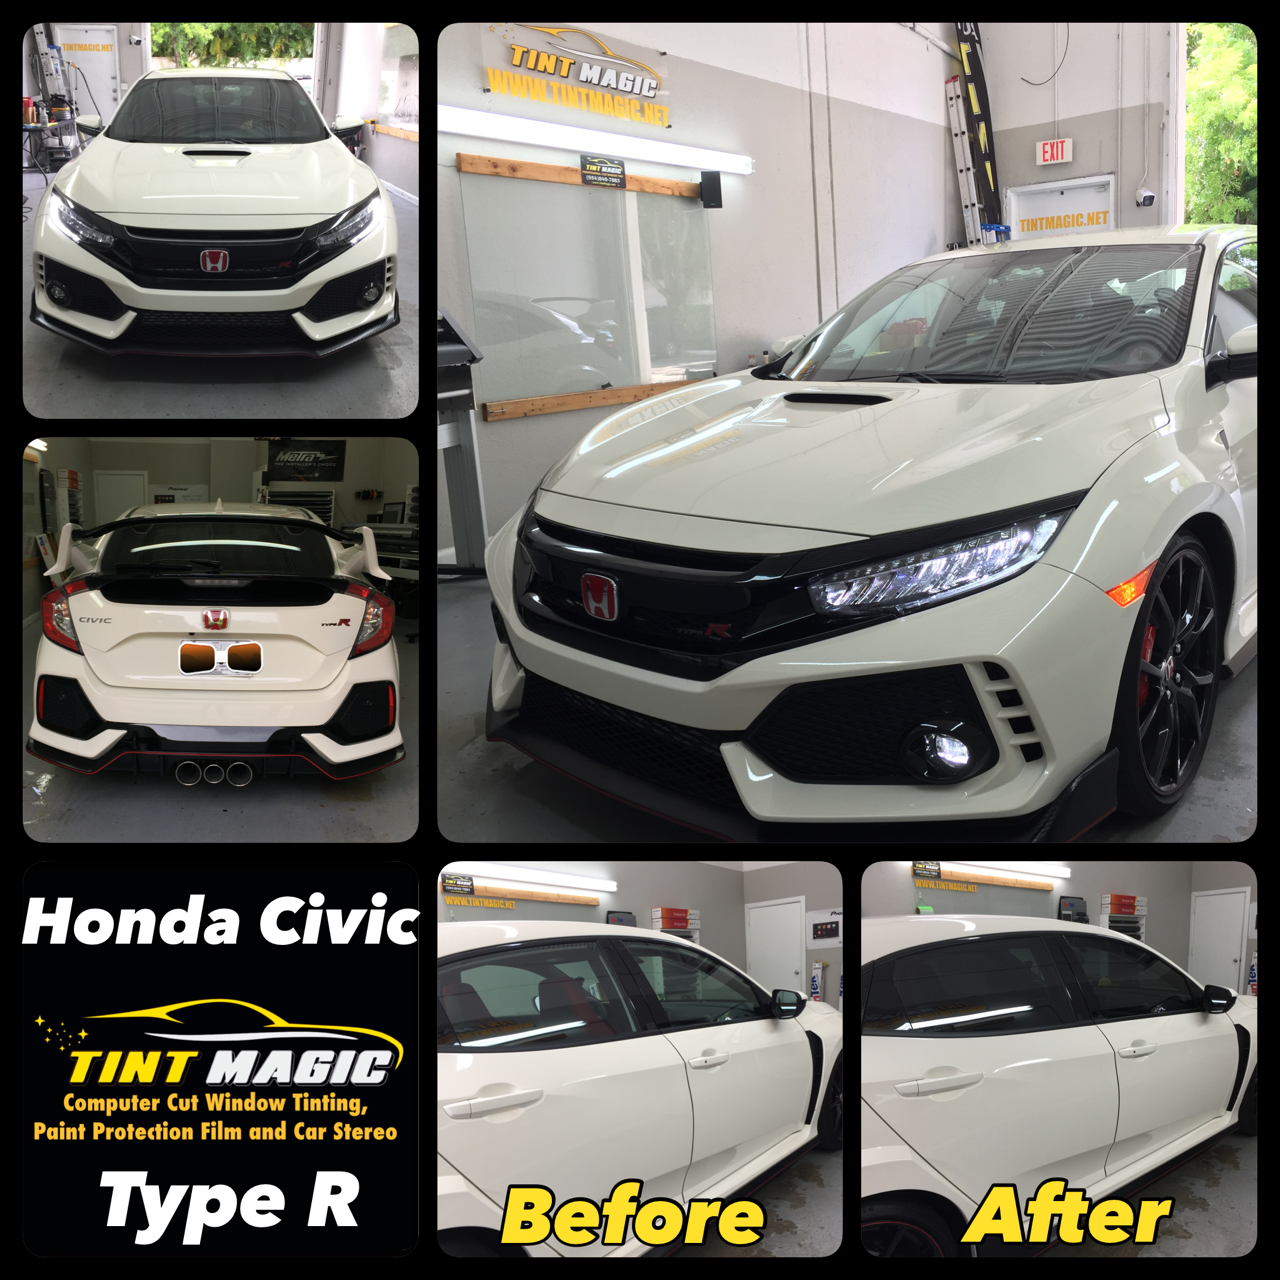 Honda Civic Type R at Tint Magic Window Tinting Coral Springs